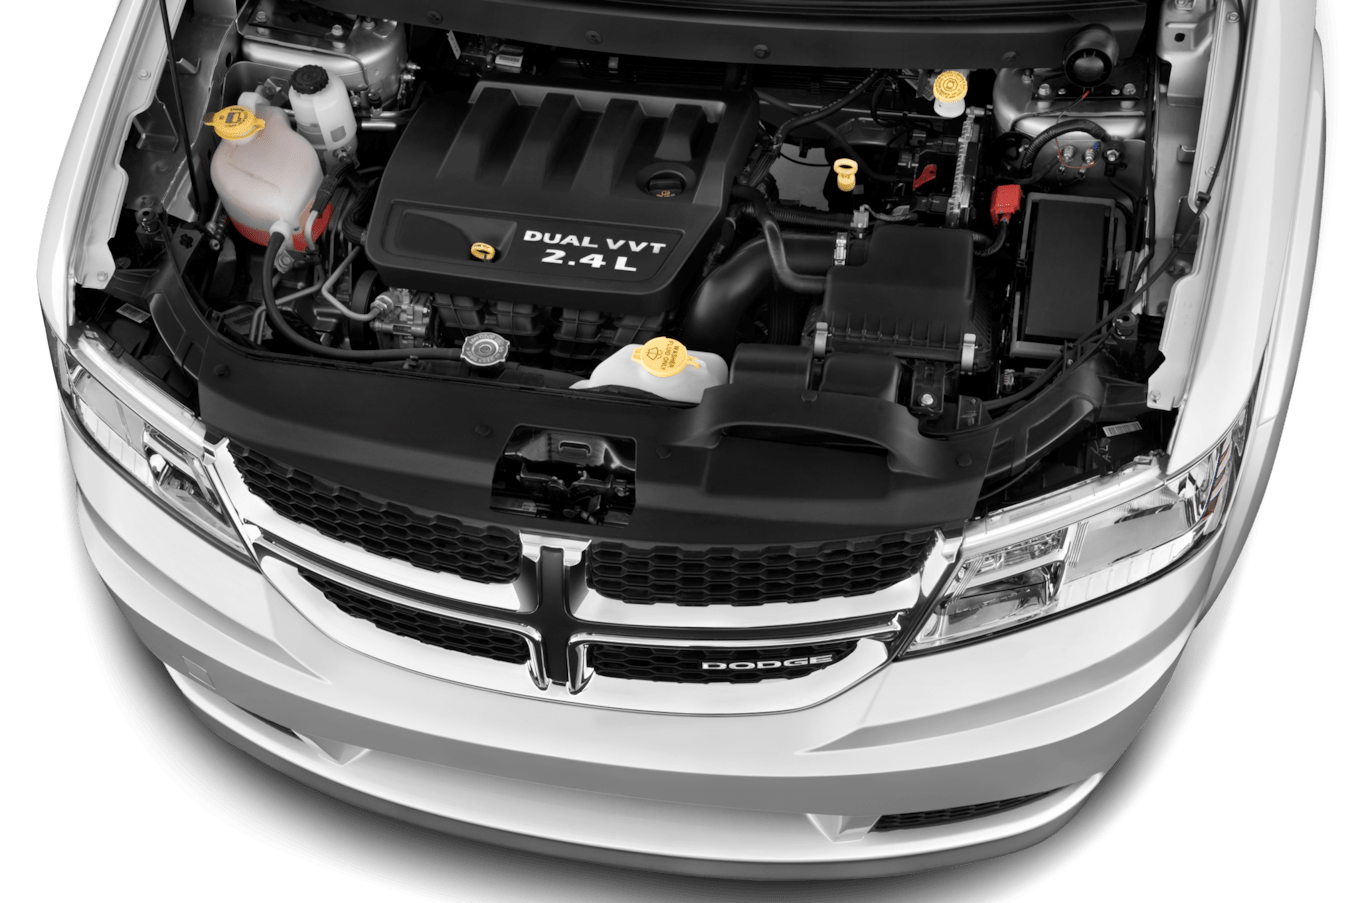 hight resolution of 2013 dodge journey reviews and rating motortrend rh motortrend com 2012 chevy traverse engine diagram 2012 jeep liberty engine diagram